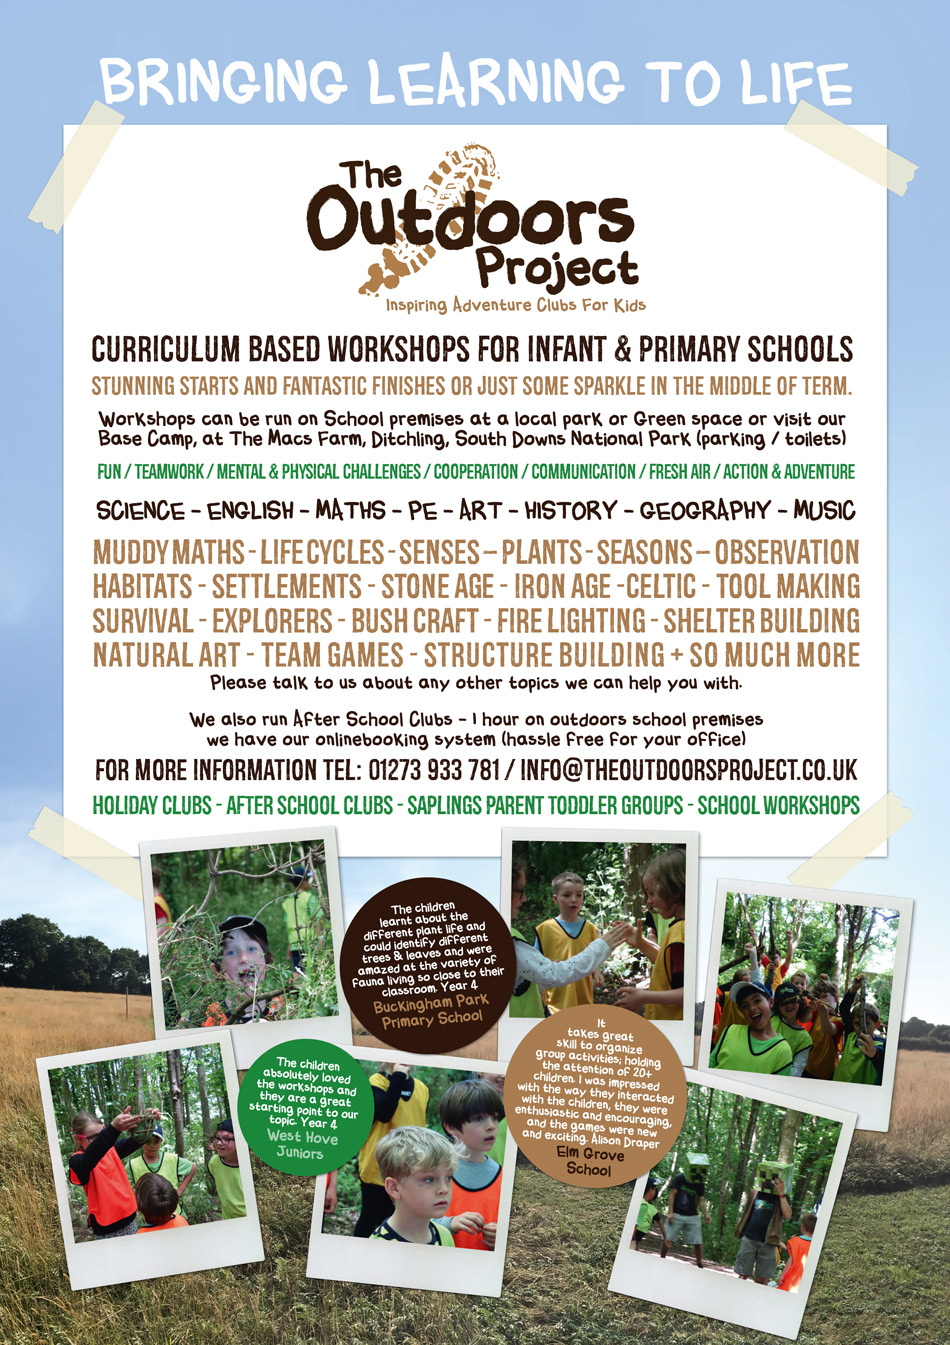 School Outdoors Learning Brighton & Hove